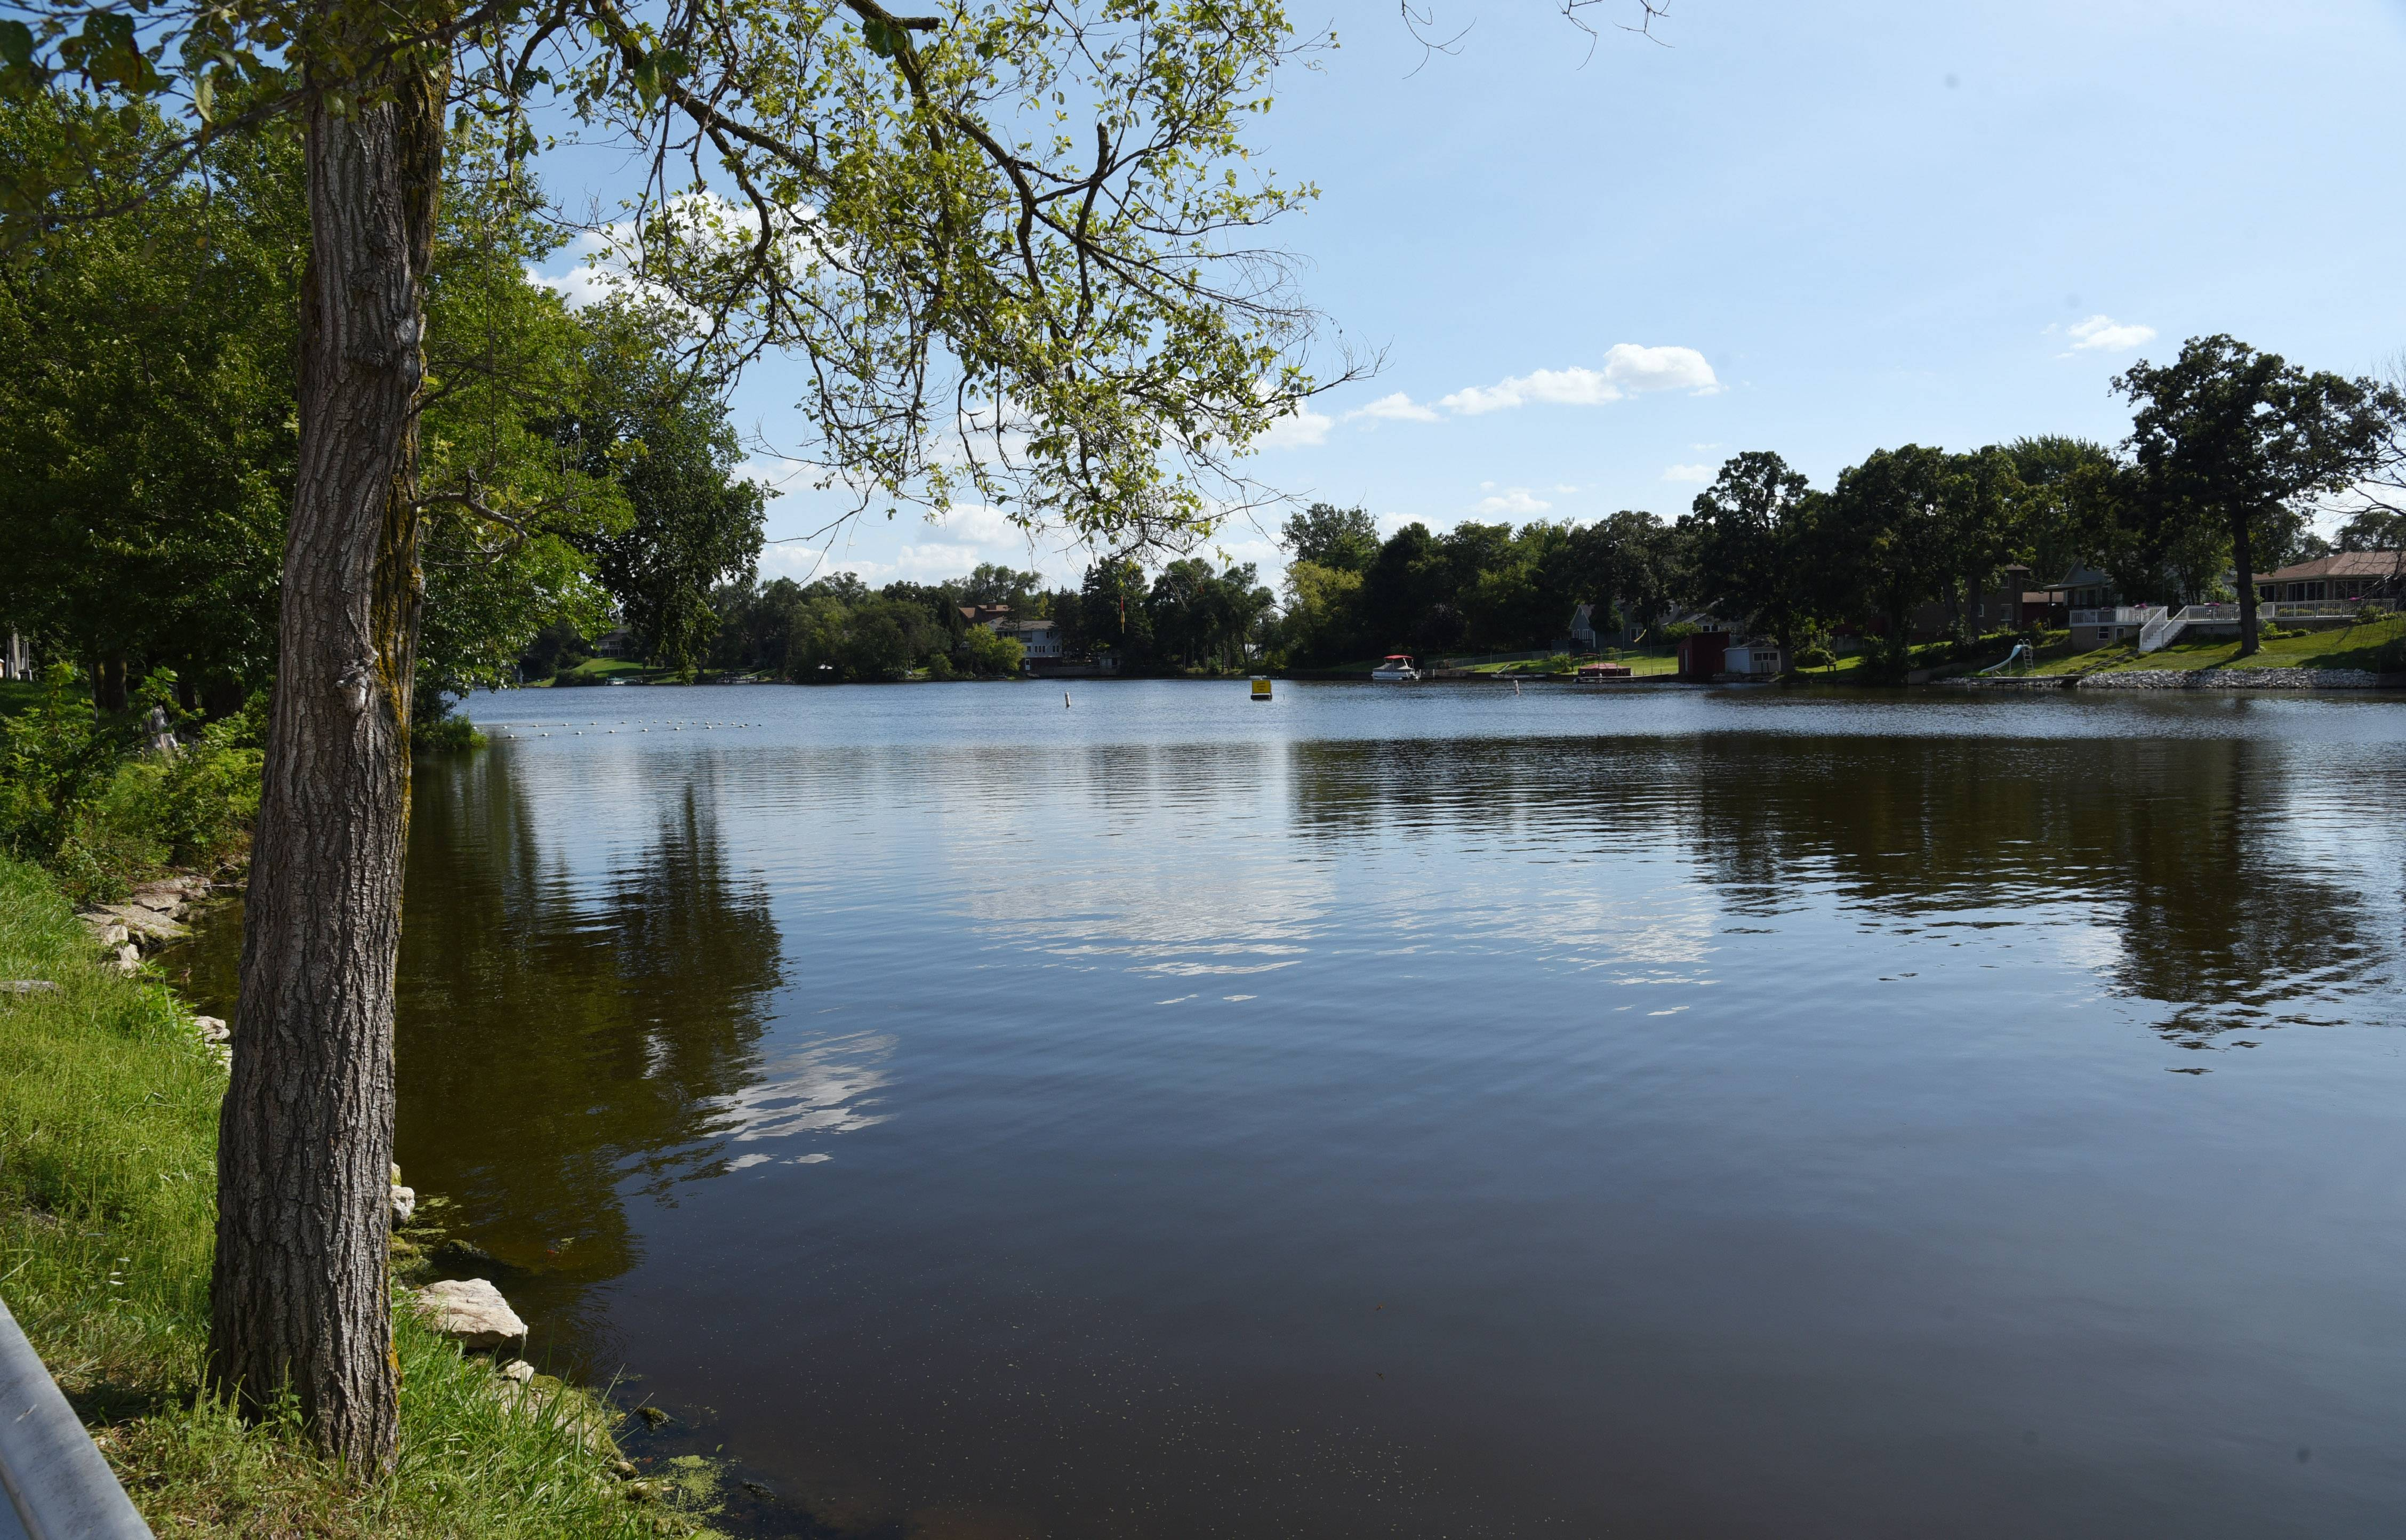 Island Lake could become the latest town to restrict the use of fertilizers containing phosphorous. The proposal follows a 2013 Lake County Health Department report that said the town's namesake lake is in poor shape, thanks in part to high phosphorous levels.